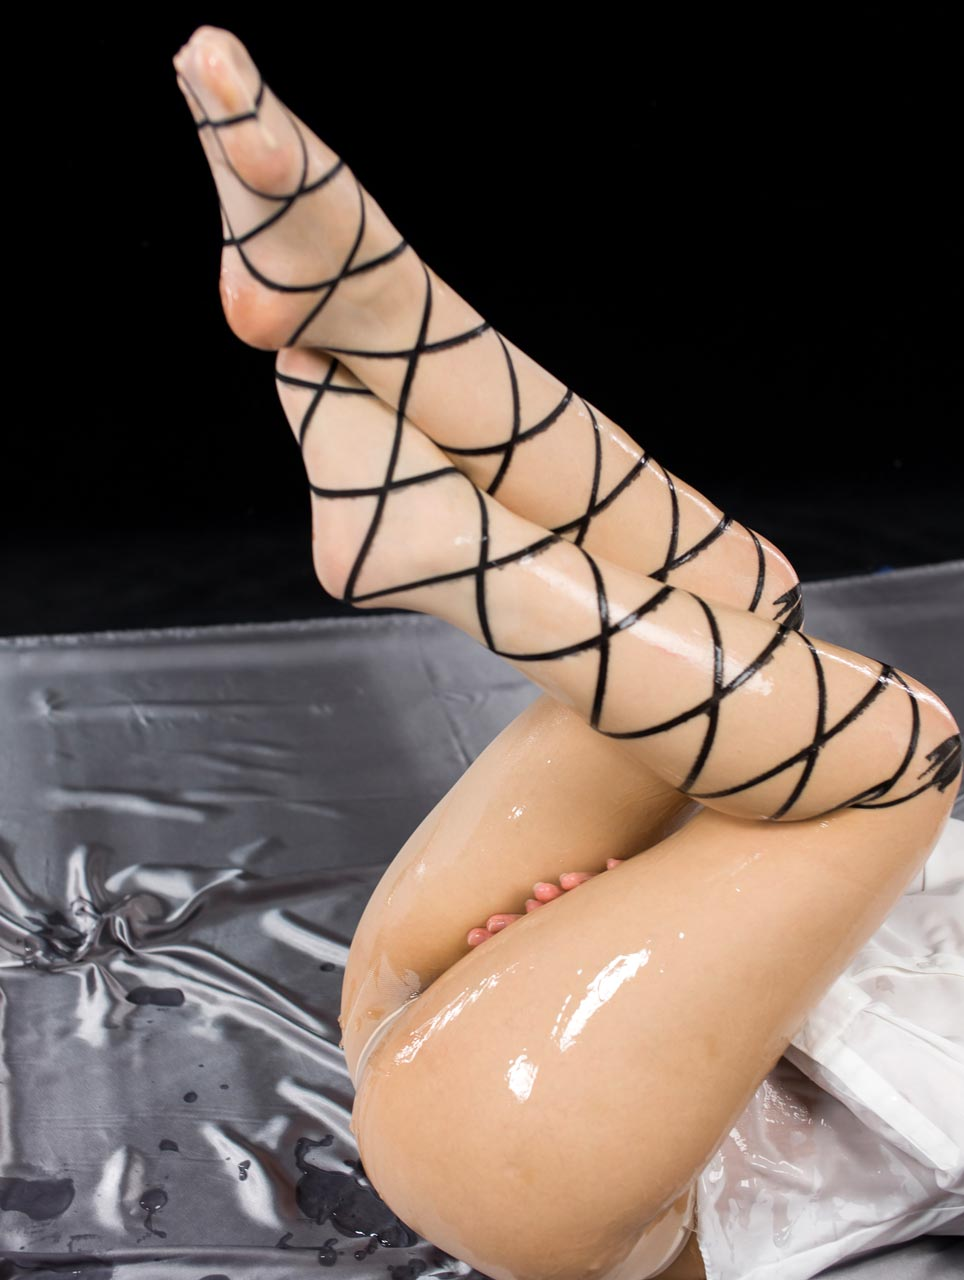 Pantyhose Fetish at LegsJapan. Leg and Foot fetish porn with Yukari Toudou, nude and uncensored.